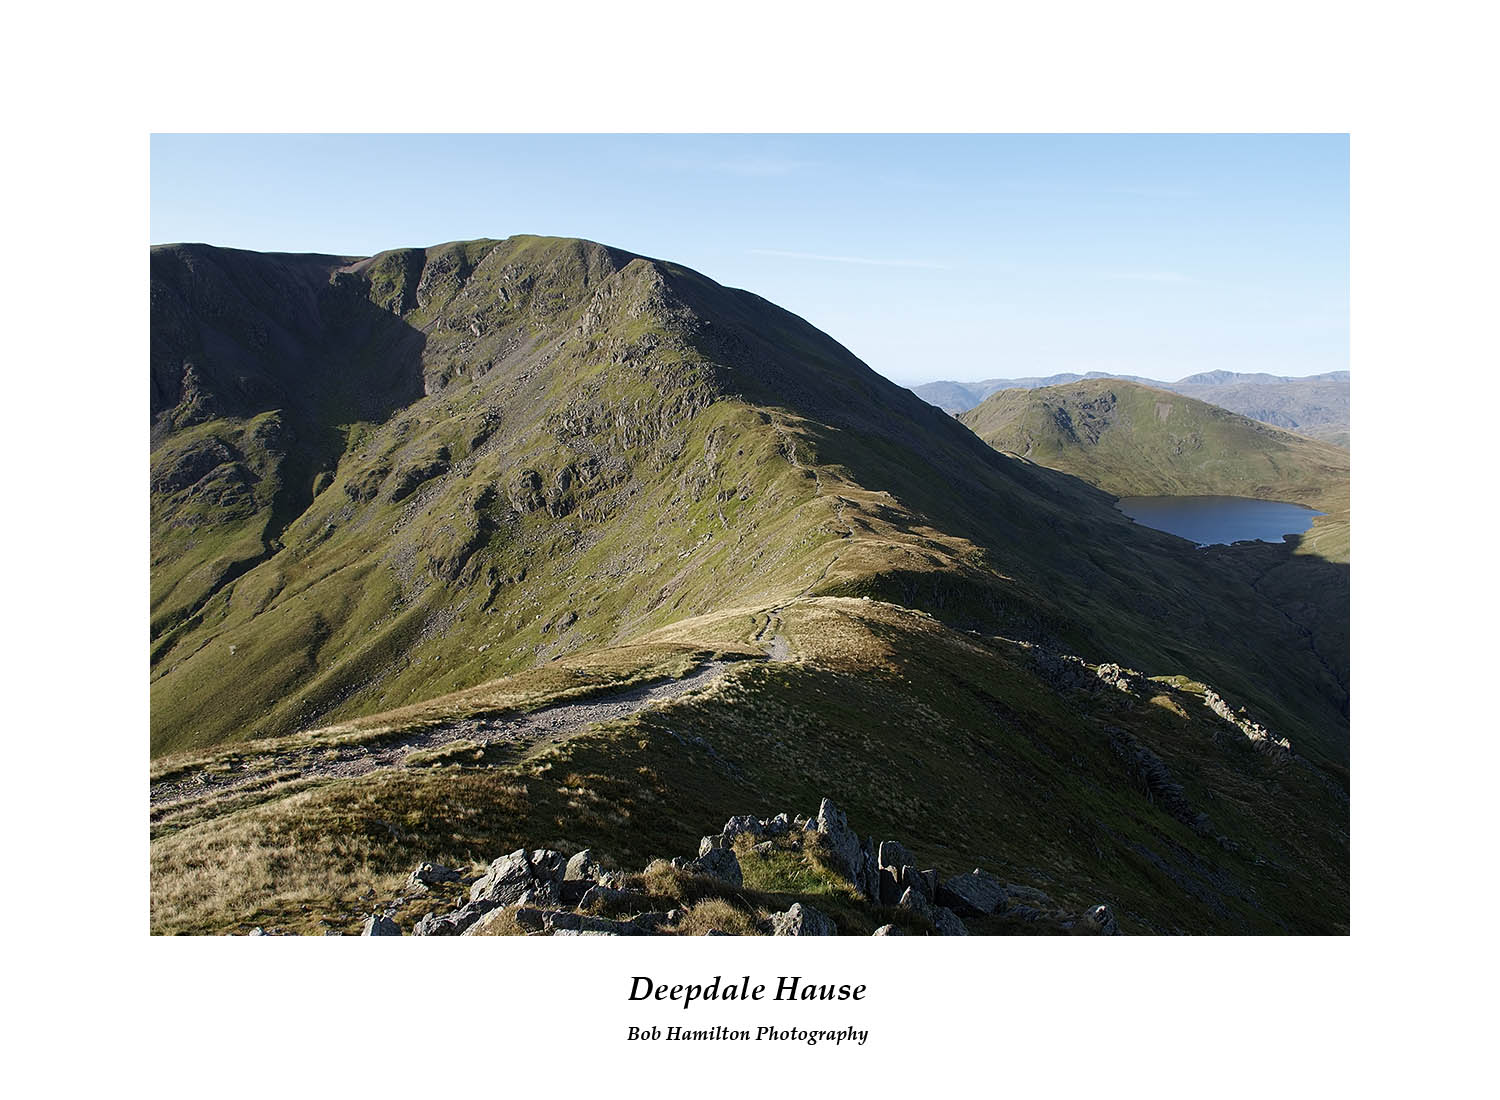 DSF1033 Fairfield Seat Sandal and Grisedale Tarn from Deepdale Hause